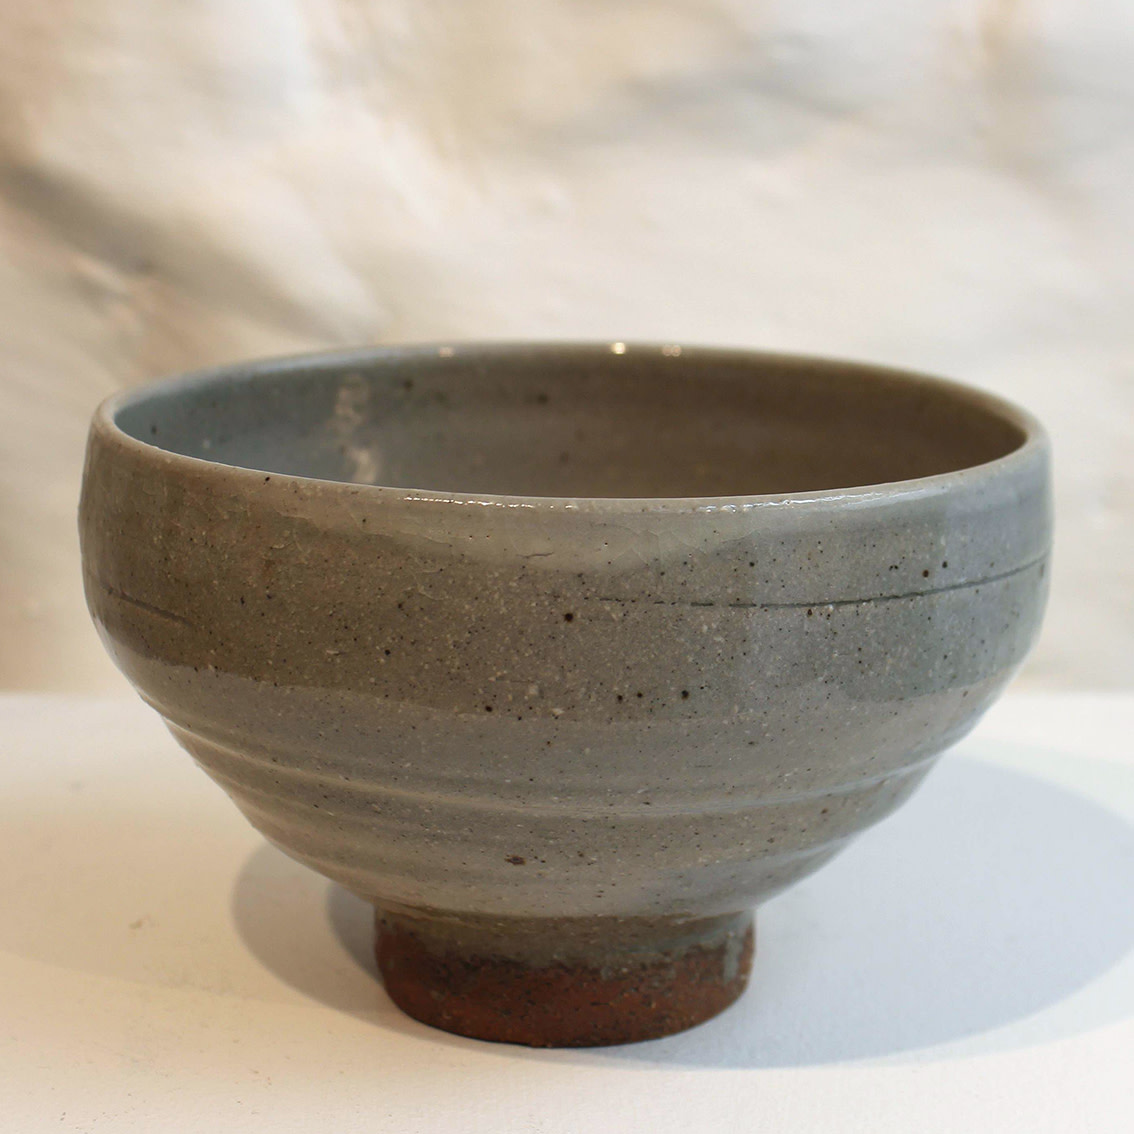 "<span class=""link fancybox-details-link""><a href=""/artists/200-matthew-tyas/works/5463-matthew-tyas-ying-ching-chawan-bowl-2018/"">View Detail Page</a></span><div class=""artist""><strong>Matthew Tyas</strong></div> <div class=""title""><em>Ying Ching Chawan Bowl</em>, 2018</div> <div class=""signed_and_dated"">stamped by the artist</div> <div class=""medium"">glazed thrown stoneware</div><div class=""price"">£75.00</div><div class=""copyright_line"">Copyright The Artist</div>"